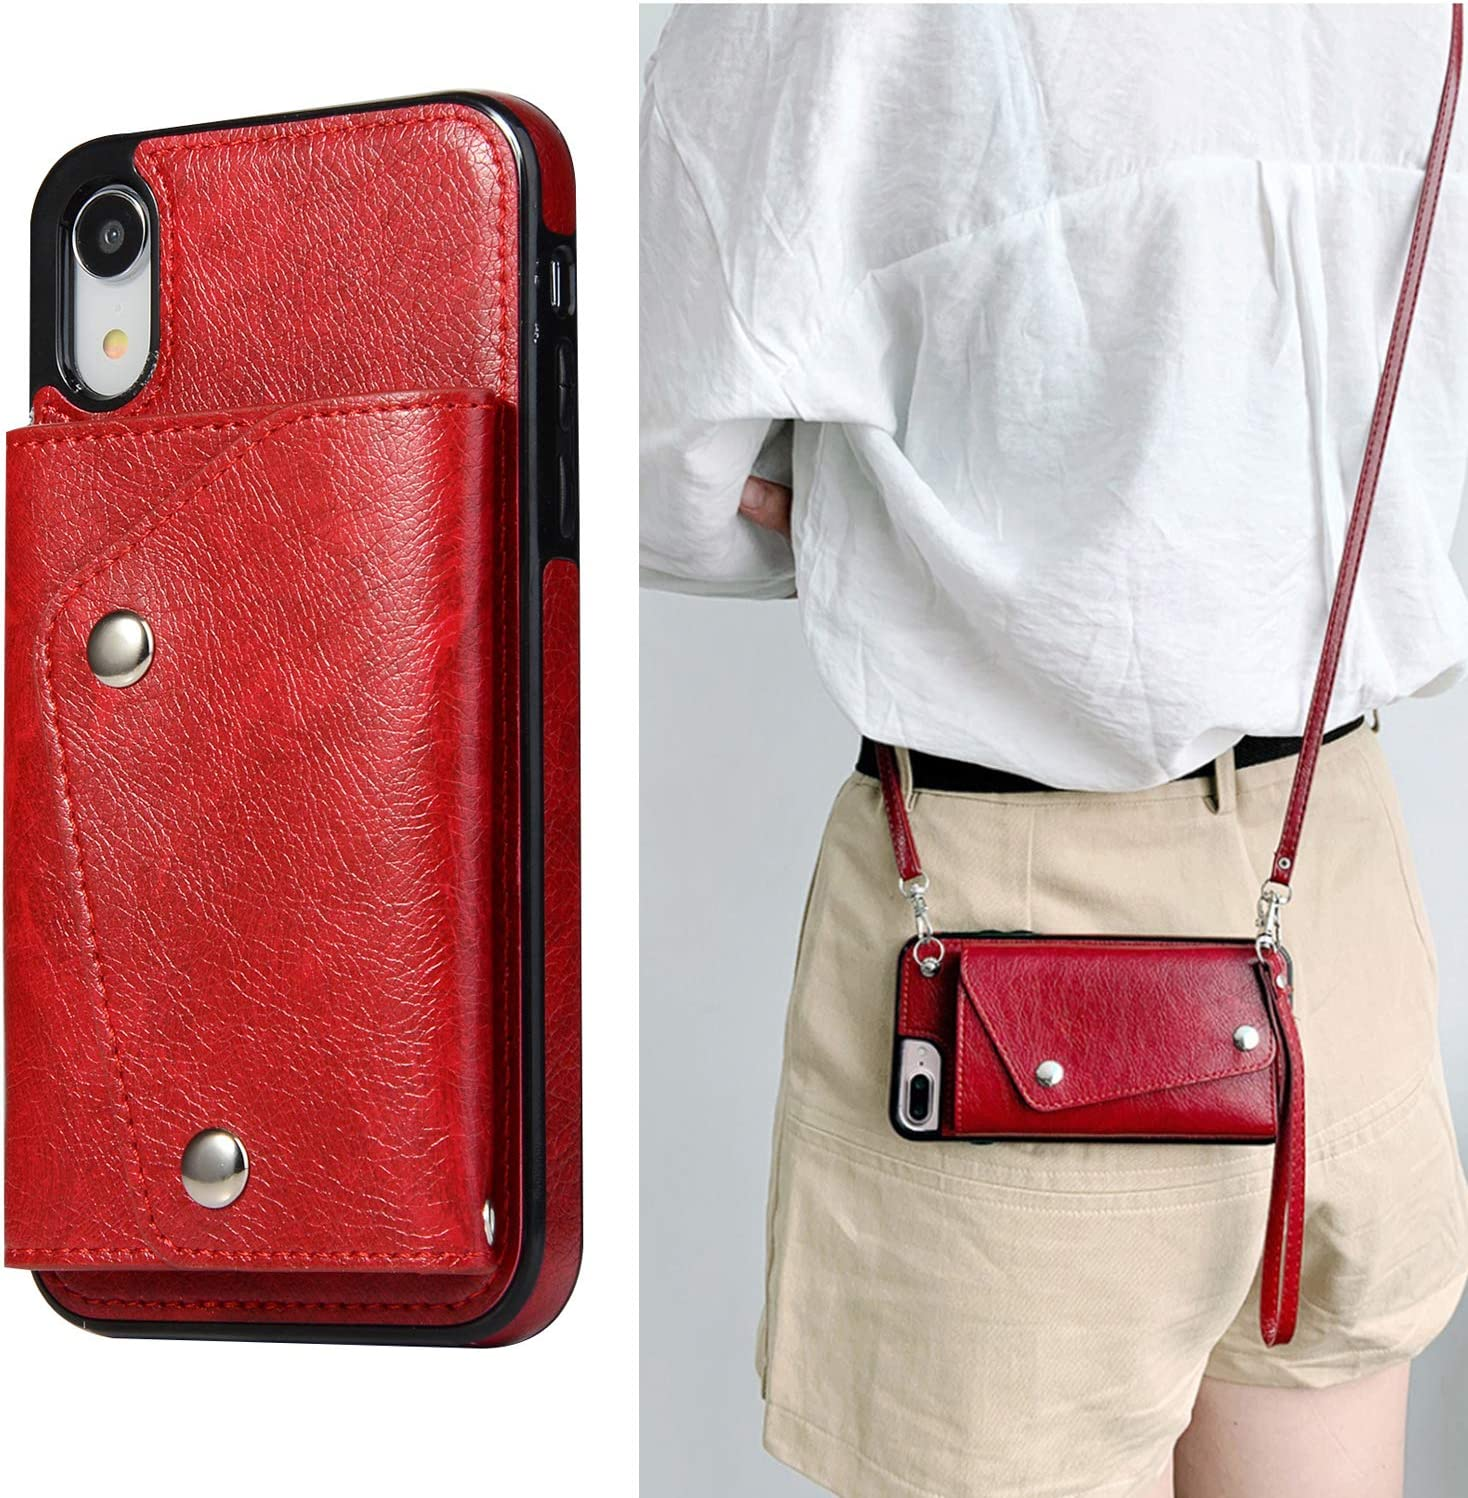 LUVI for iPhone XR Wallet Case with Crossbody Neck Strap Lanyard Handbag Hand Wrist Strap Protective Cover with Credit ID Card Holder Slot PU Leather Case for iPhone XR Red